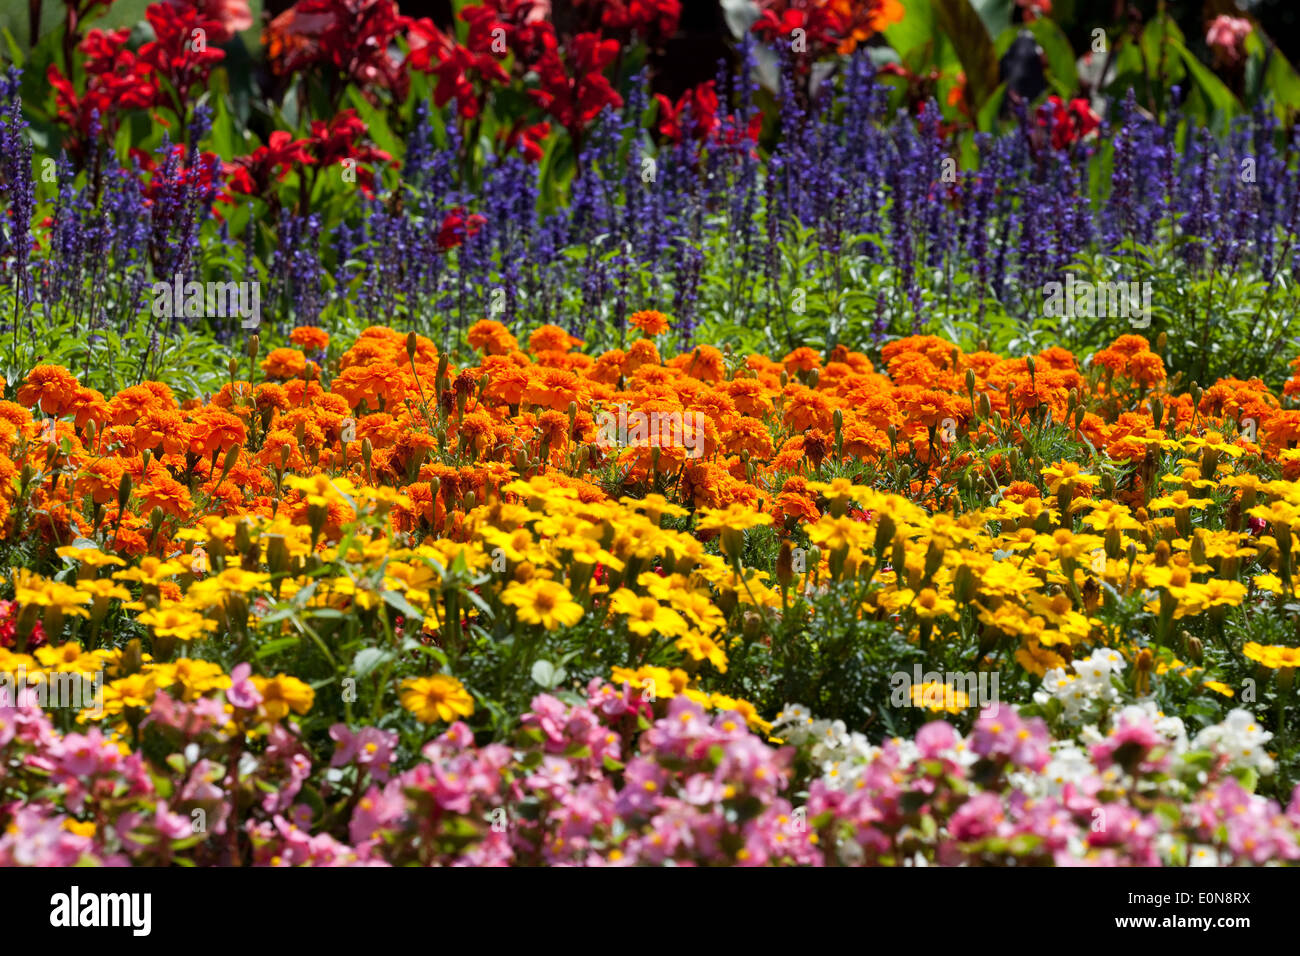 Blumen garten  Blumengarten - flower garden Stock Photo, Royalty Free Image ...